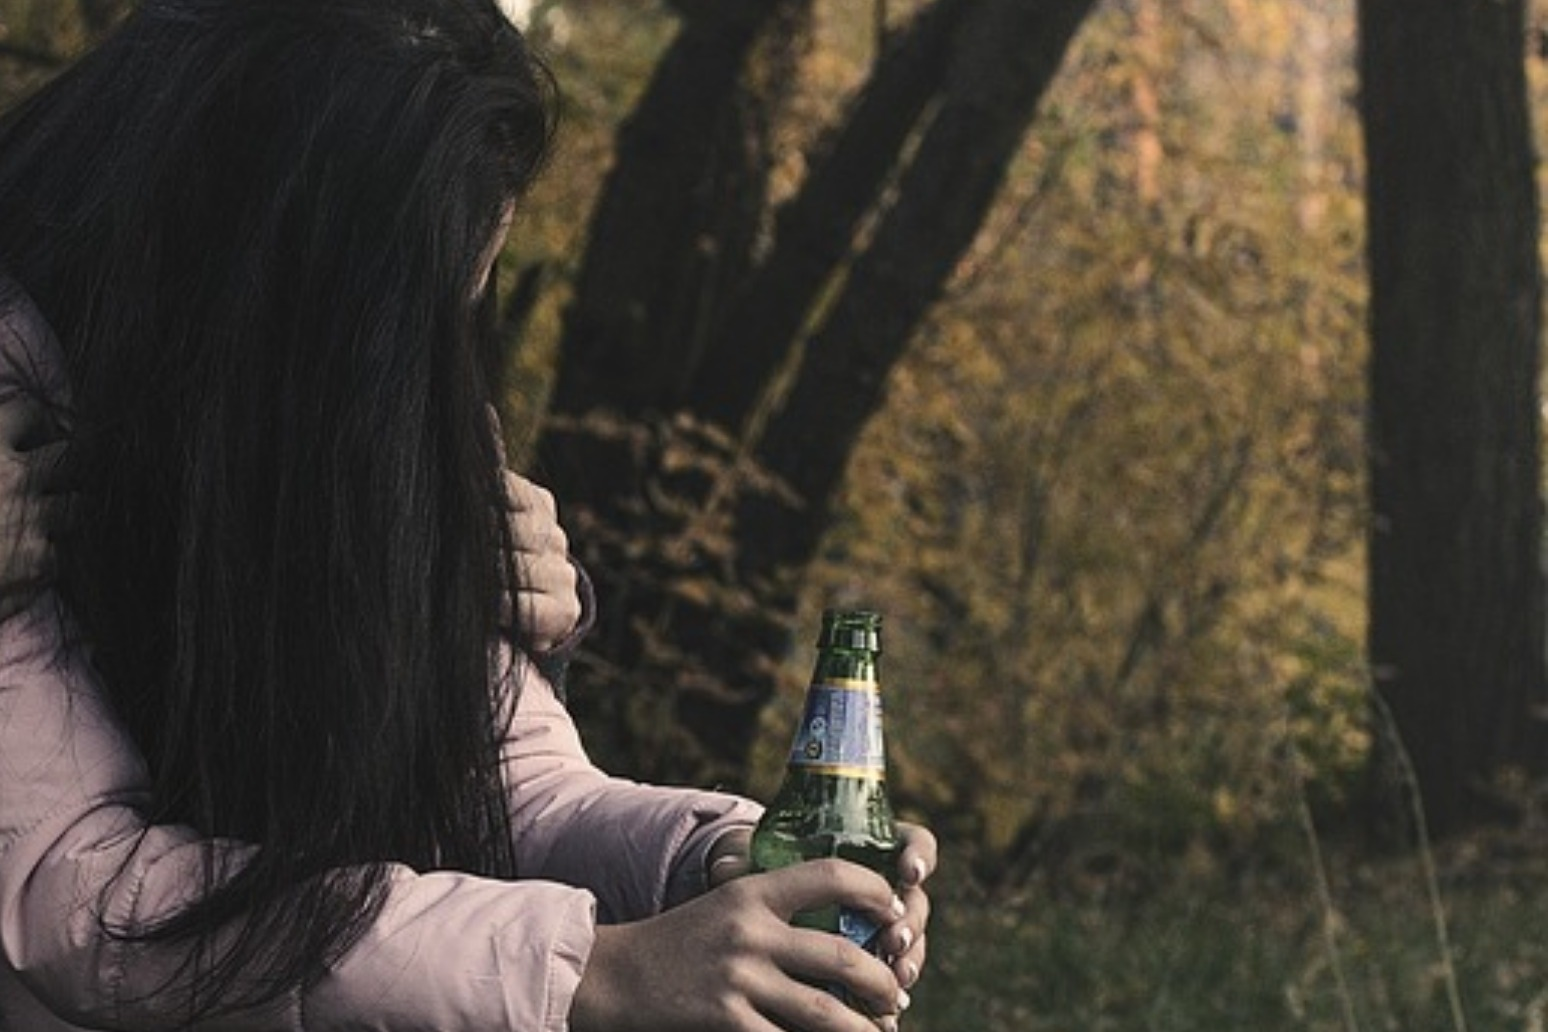 New support to help children living with alcohol-dependent parents